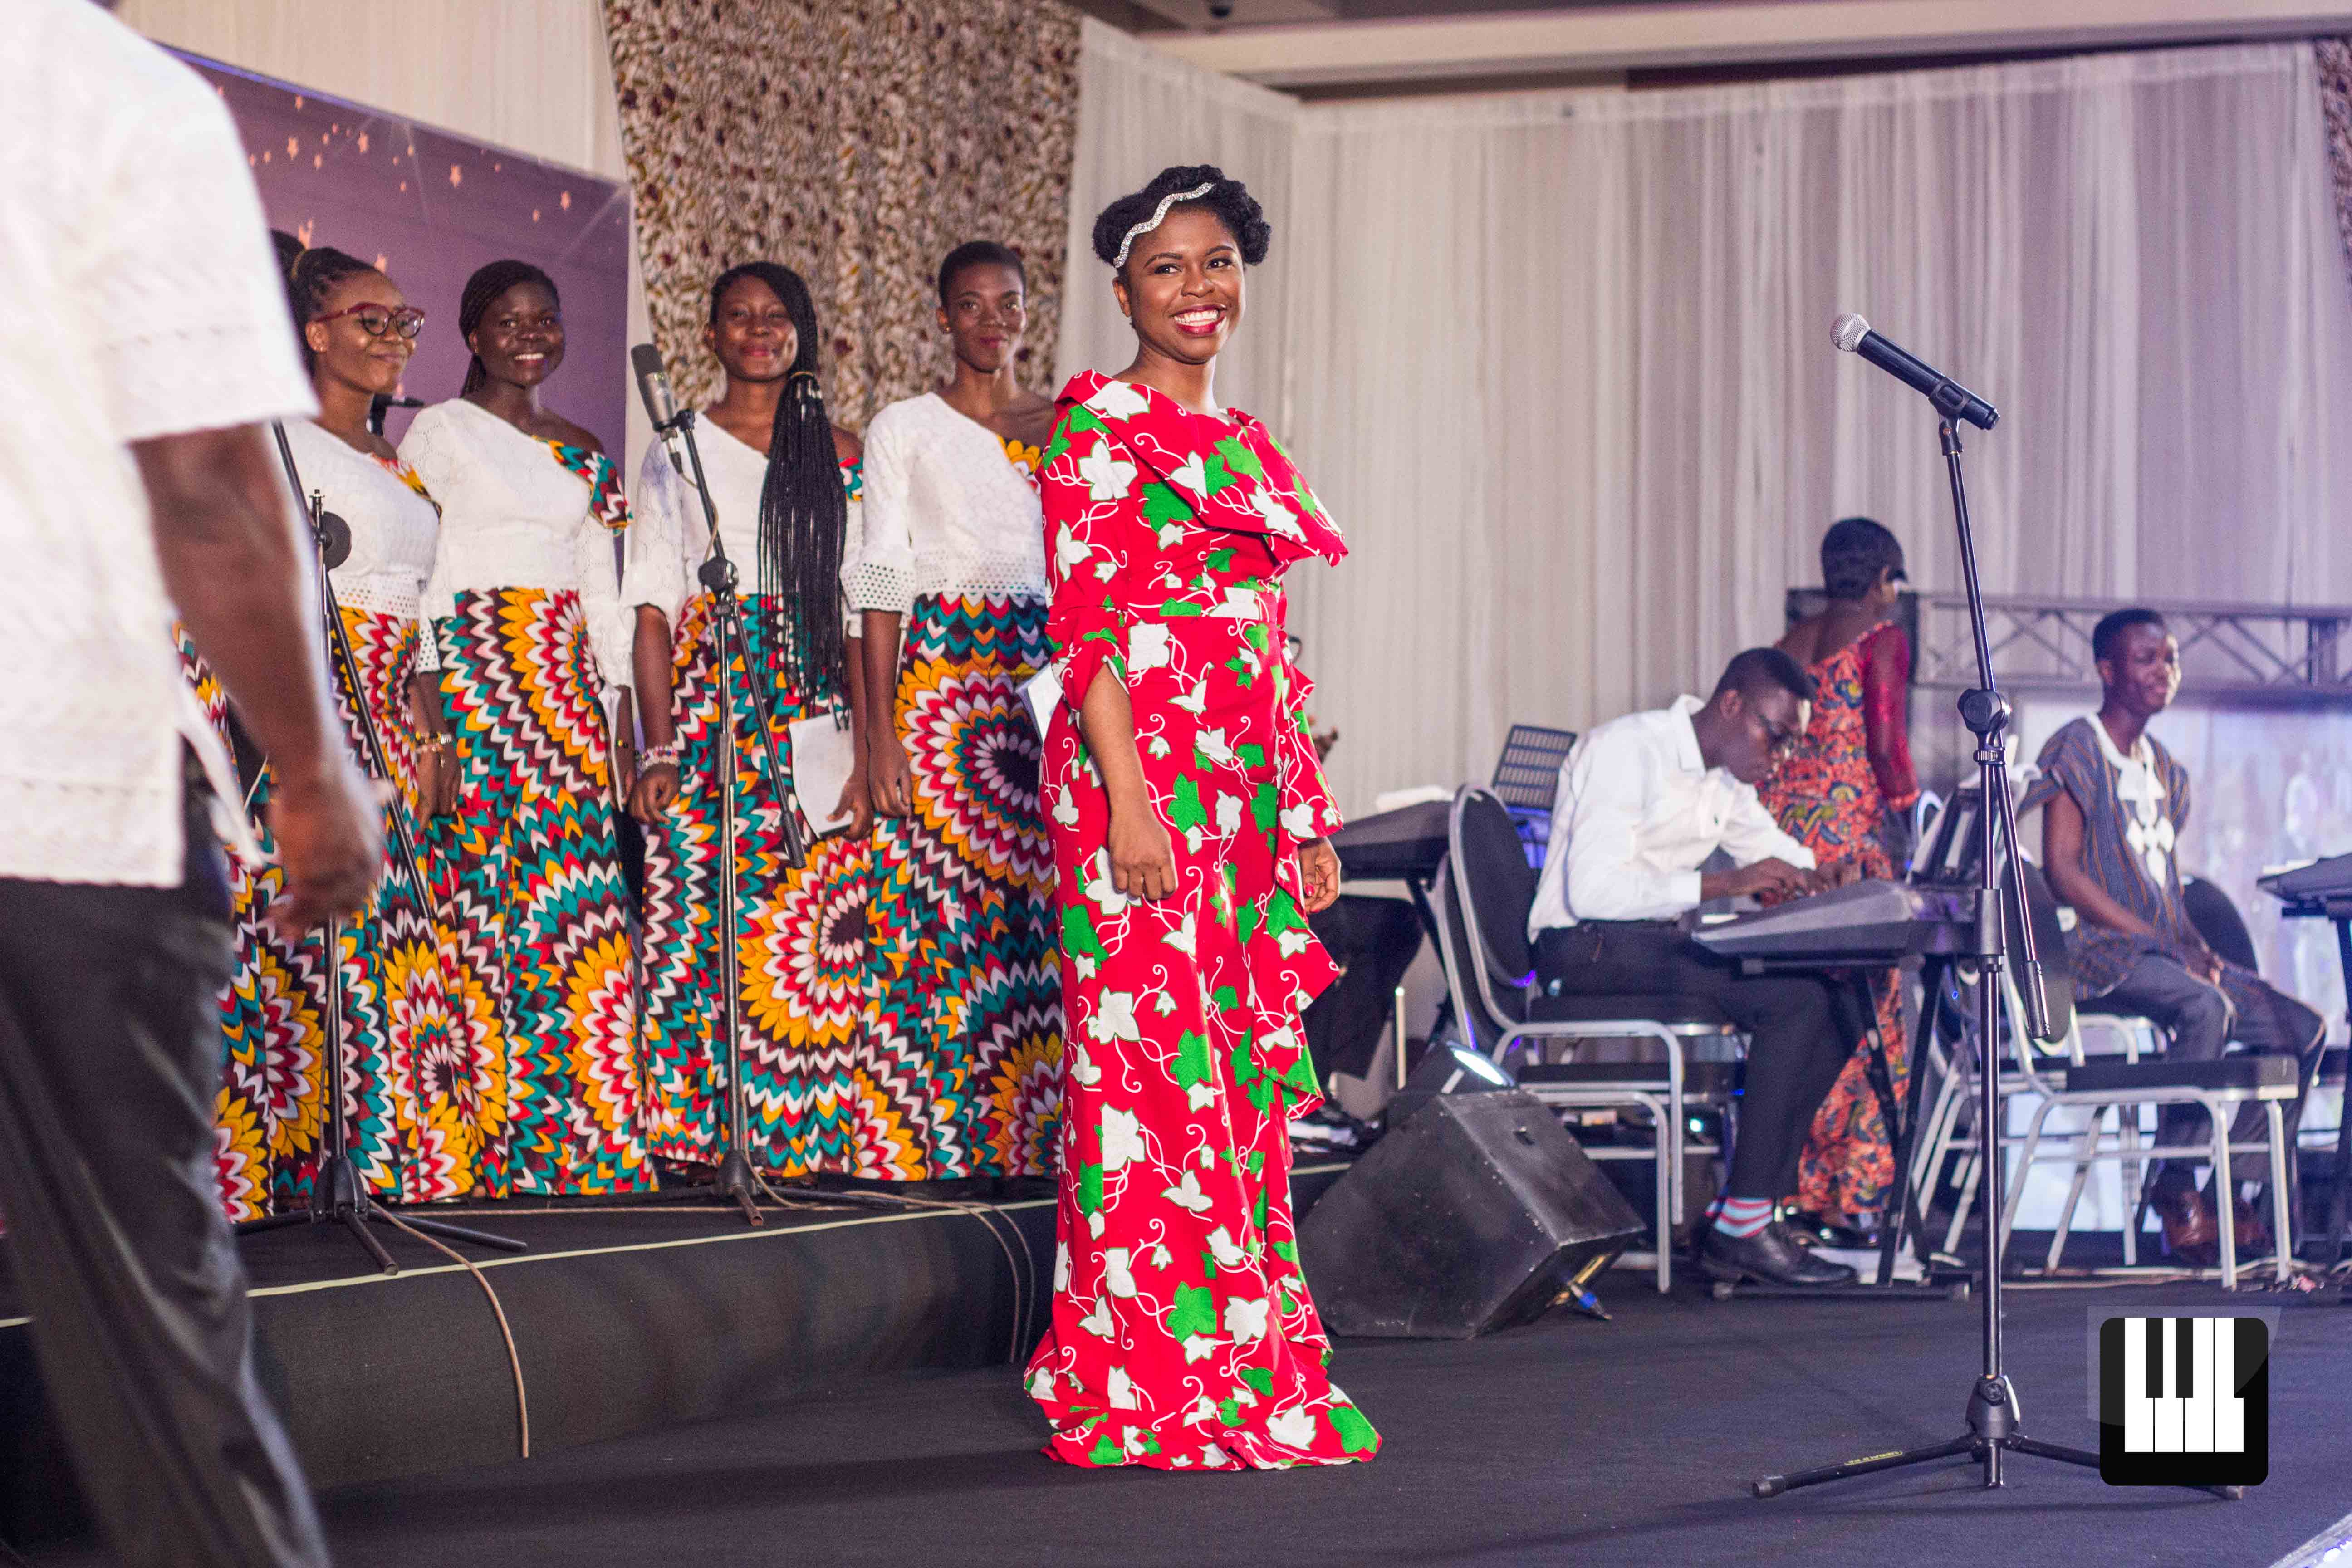 2018 Year in Review 2018 was a year of major milestones in Ghanaian choral and classical music. Jesse Johnson rounds up the best moments of the last twelve months.